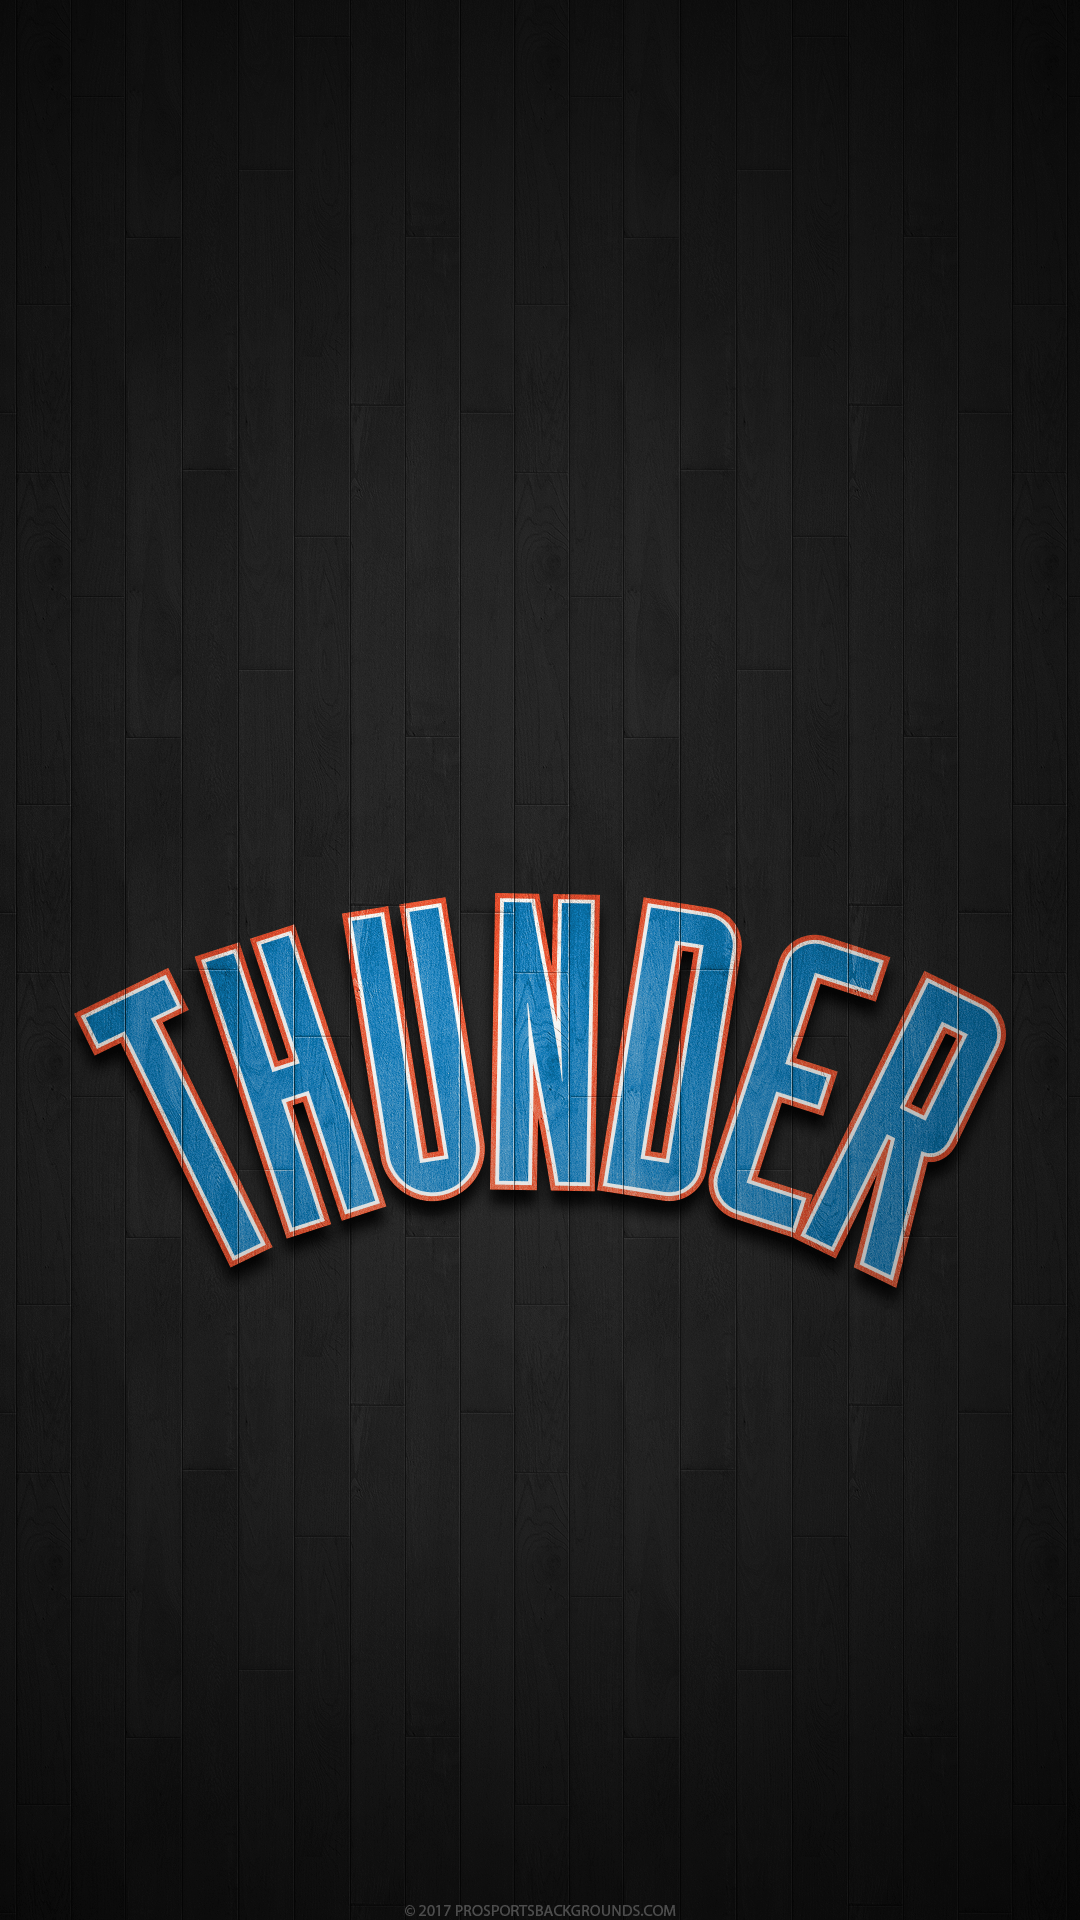 Okc Thunder Wallpapers Wallpaper Cave HD Wallpapers Download Free Images Wallpaper [1000image.com]